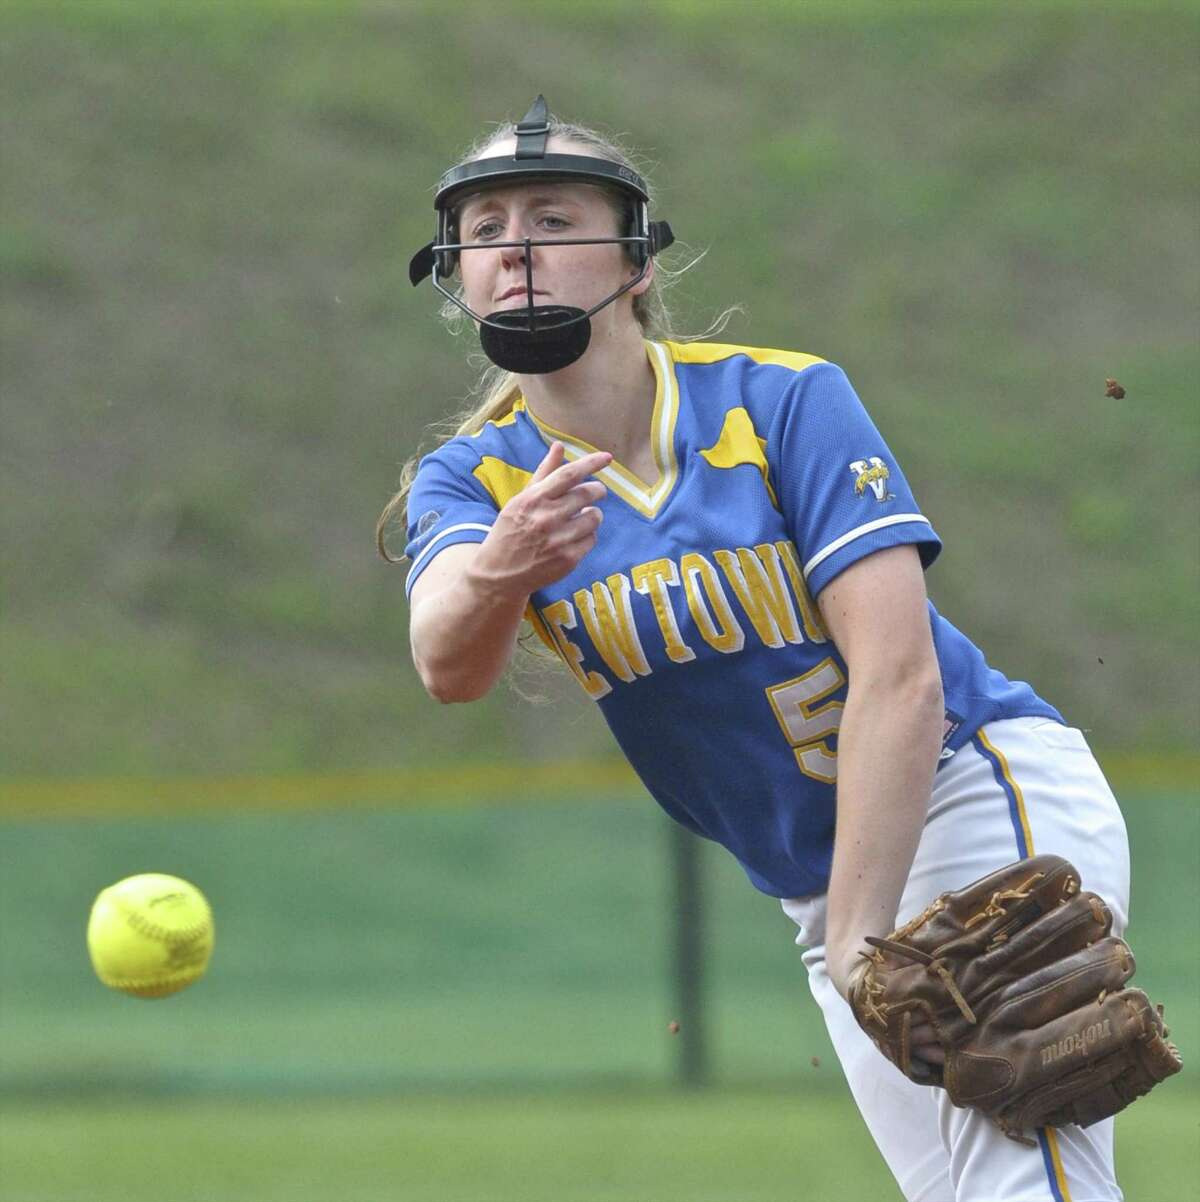 Newtown pitcher Sara Kennedy (5) during the SWC softball game between Newtown and Joel Barlow high schools on Friday afternoon, April 22, 2016, at Joel Barlow High School, in Redding, Conn.